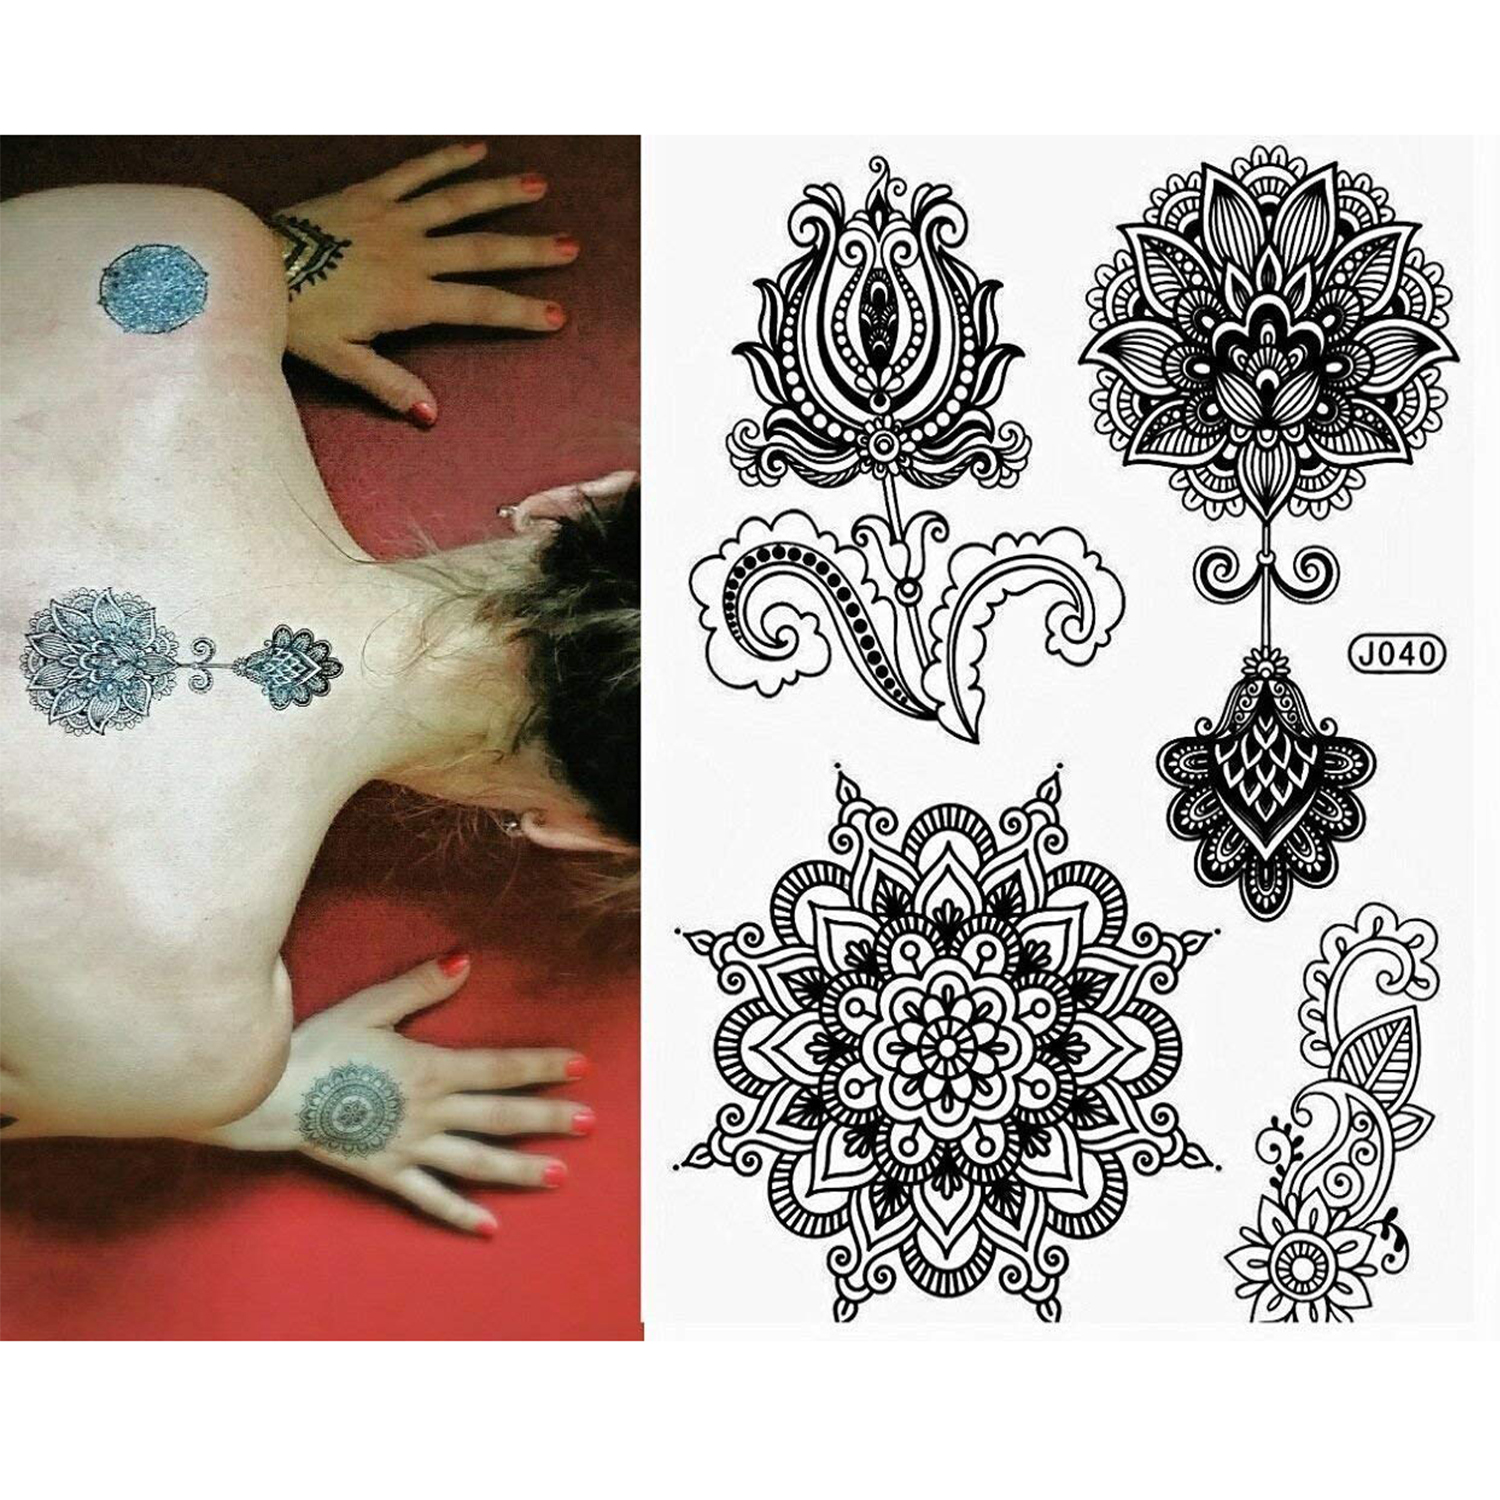 00e68bcb2 6 Sheet Henna Tattoo Stickers Black Lace Mehendi Temporary Tattoos for  Adventurous Women Teens & Girls Metallic Tattooing - Walmart.com